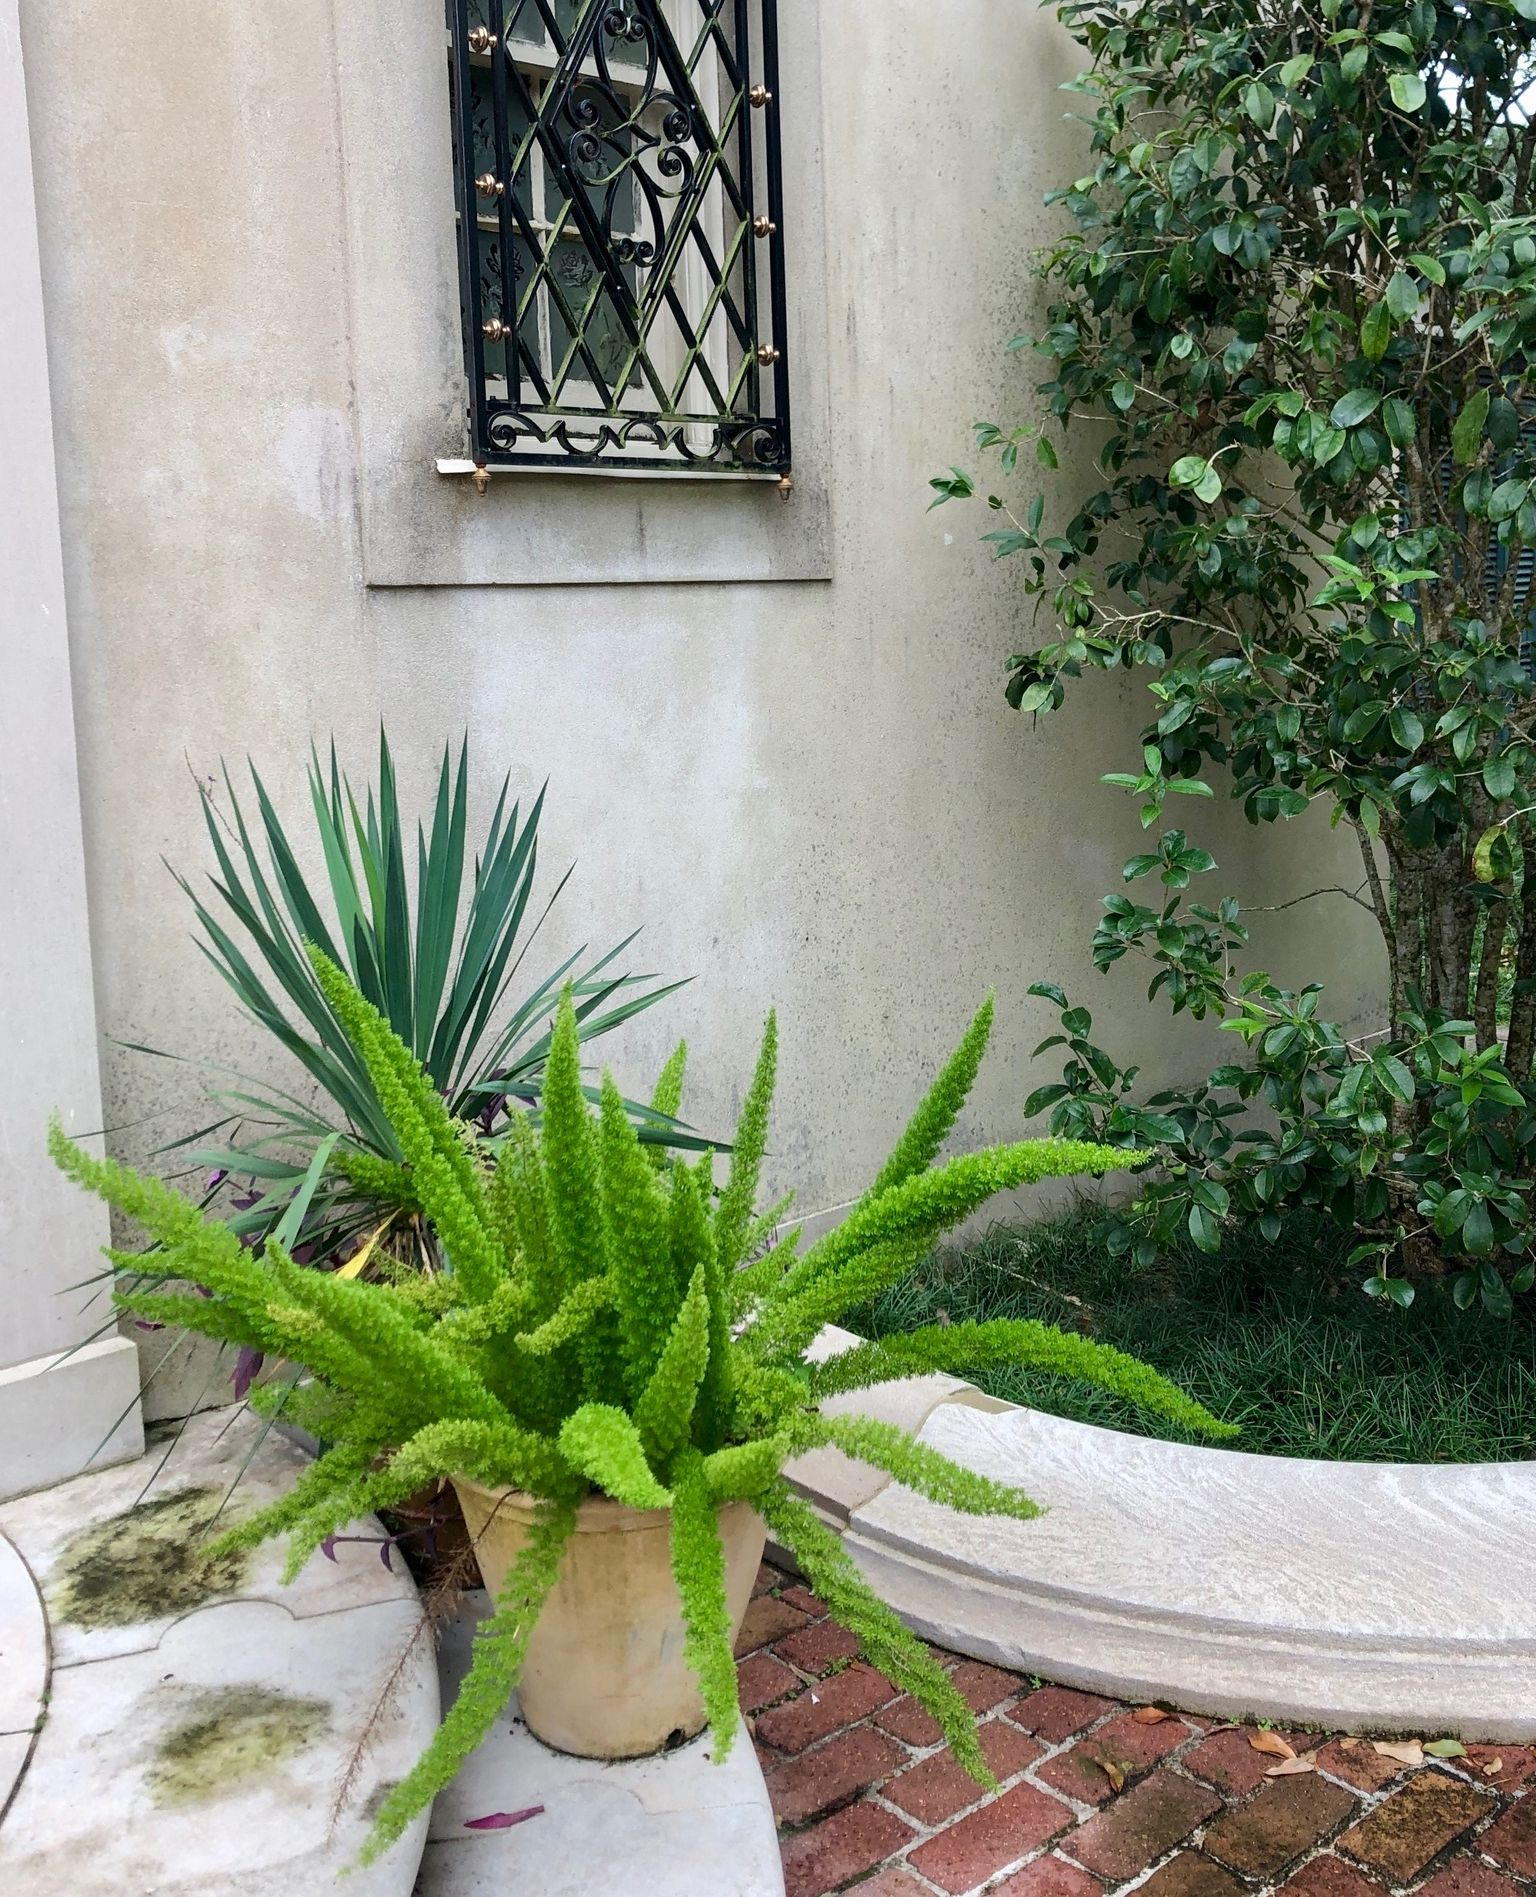 A touch of greenery (or a whole host of plants!) can do wonders to quickly update any outdoor space. We are particularly fond of Dracaena plants, Boston Ferns, Elephant ears, and Staghorn Ferns to add a bit of lush color to your garden! 🌱  Curious about how we can quickly refresh your home and outdoor living space? Email us at susan@susancurriedesign.com #interiordesign #design #susancurriedesign #inspire #luxuryliving #houseenvy #neworleansinteriors #neworleansinteriordesign